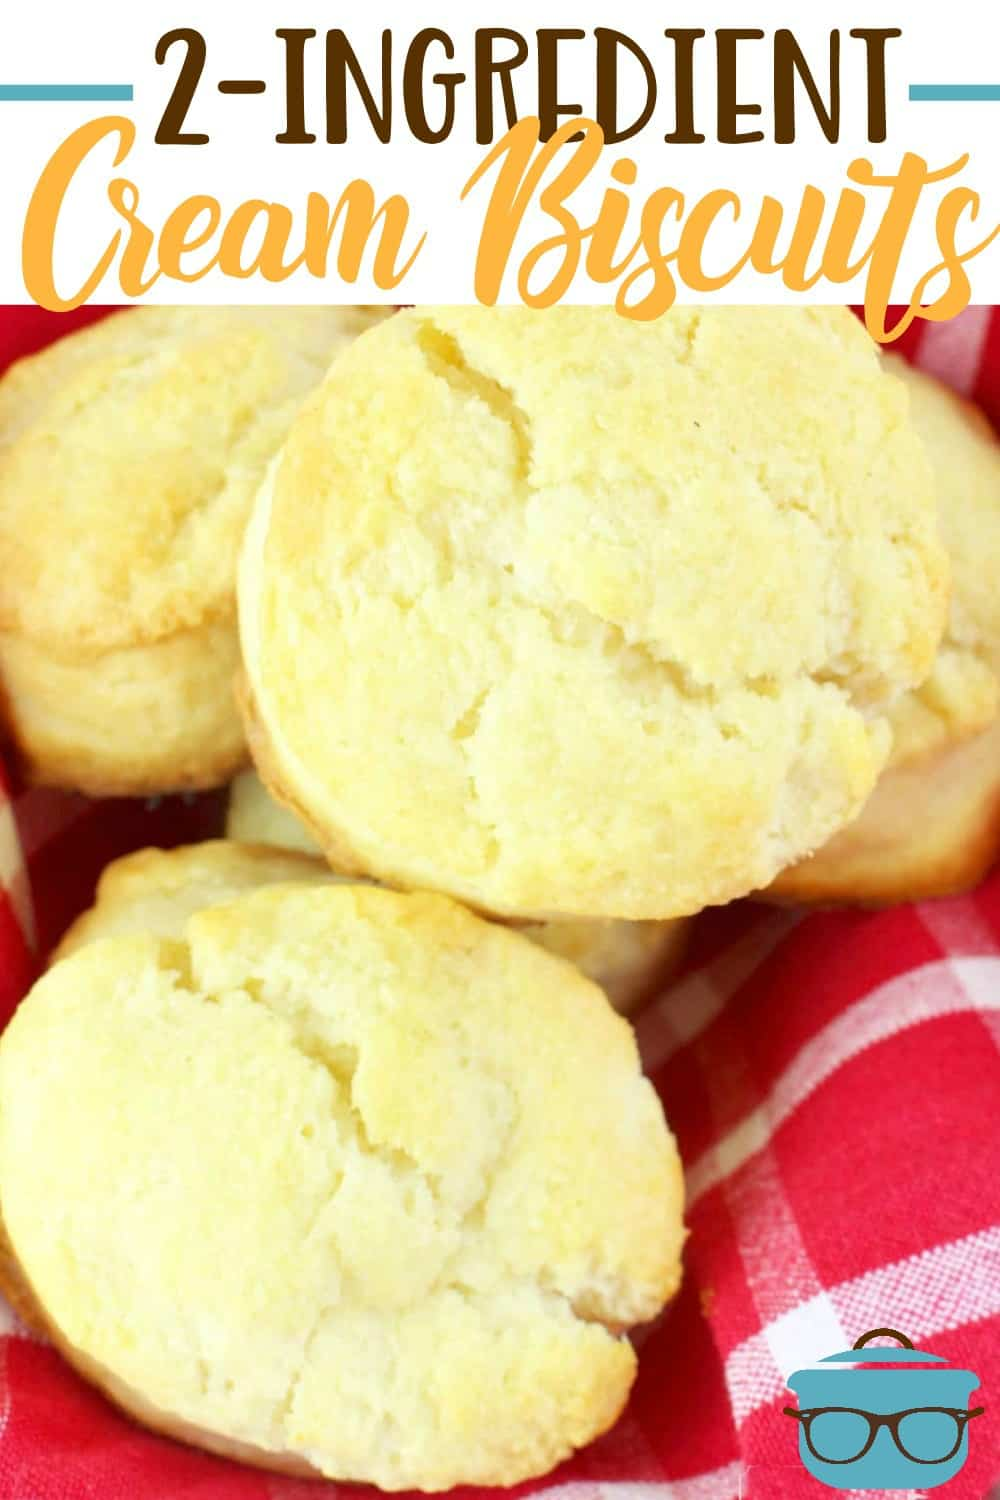 These 2-Ingredient Cream Biscuits are the easiest, fluffiest homemade biscuits ever! Just self rising flour and heavy cream with melted butter on top! #creambiscuits #breads